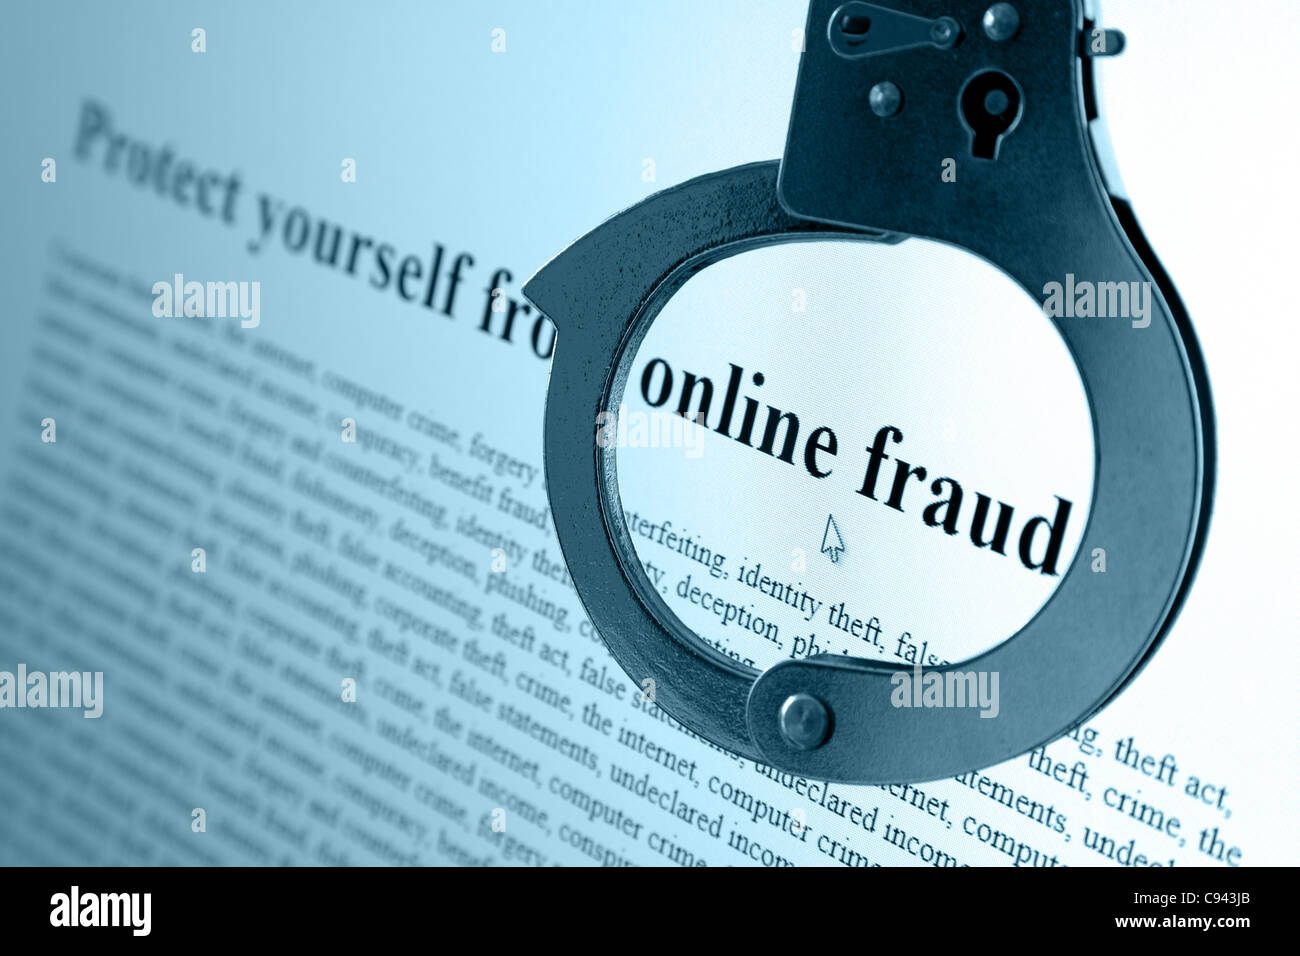 Online Fraud - Stock Image